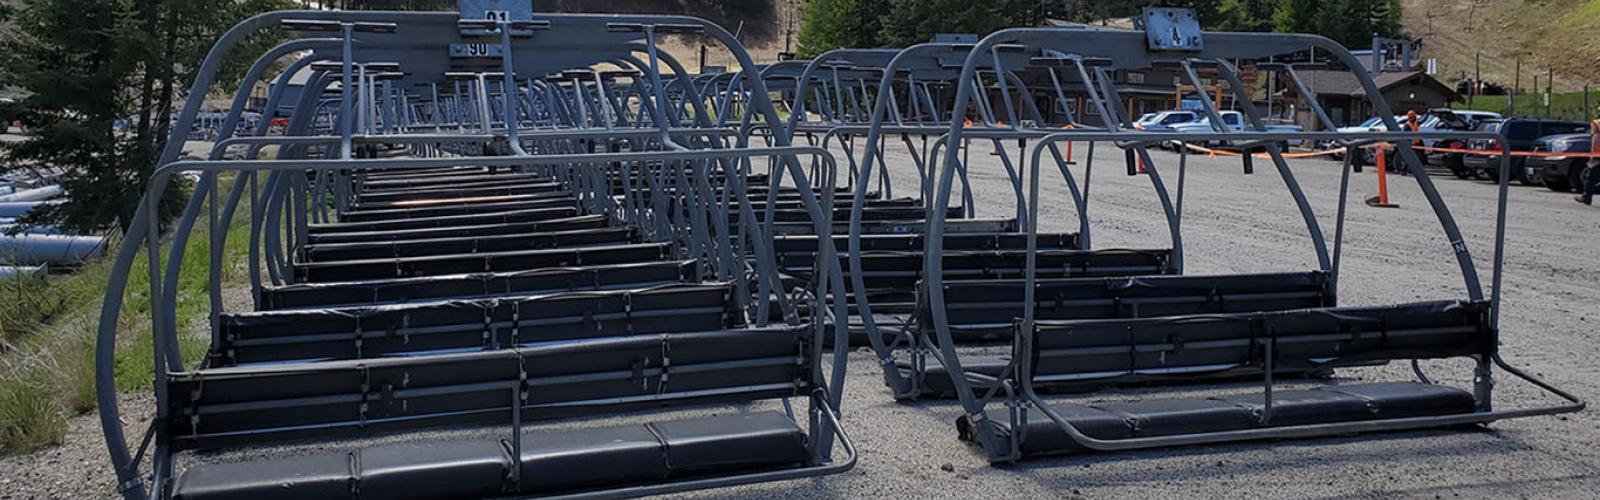 Chairlift Chairs Sitting In Parking Lot